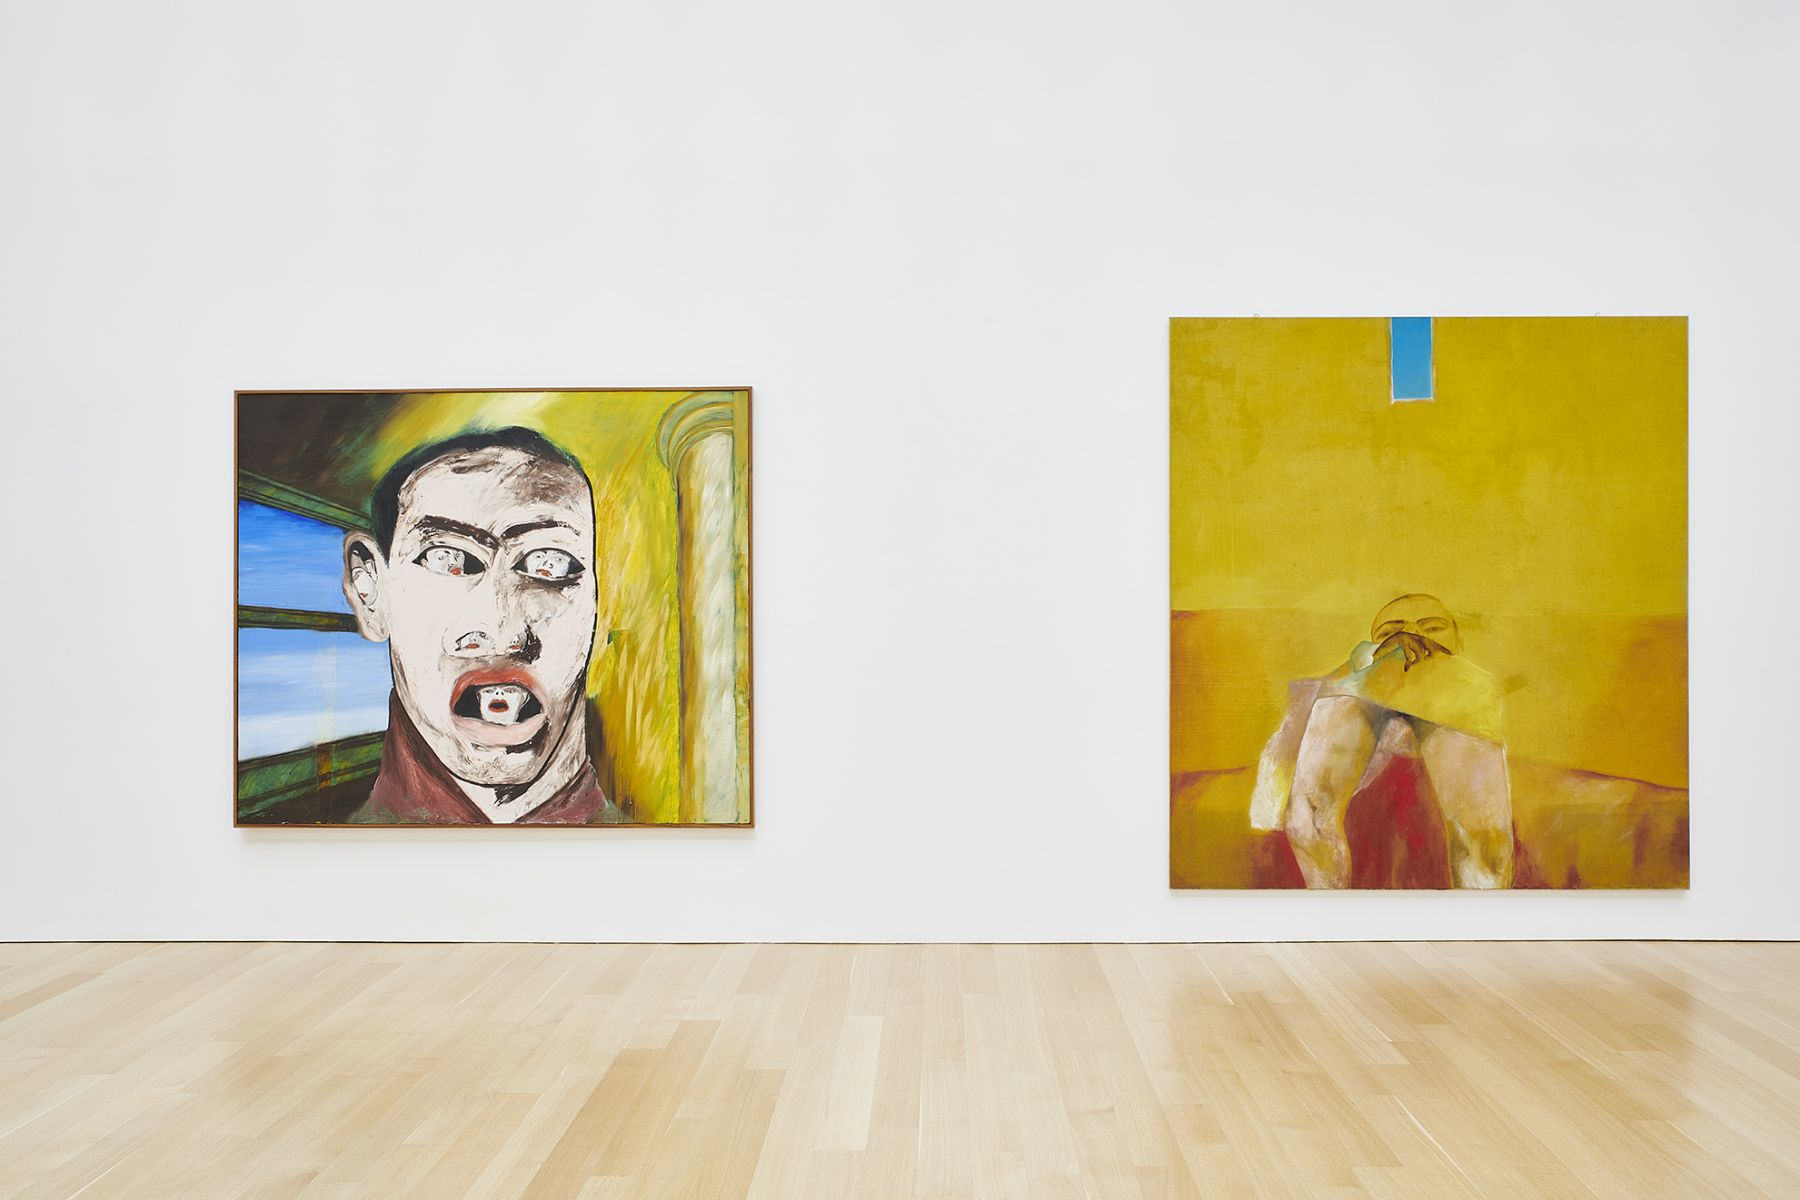 Installation view, Francesco Clemente: Works 1978-2018, The Brant Foundation Art Study Center, Greenwich, CT, 2018-2019